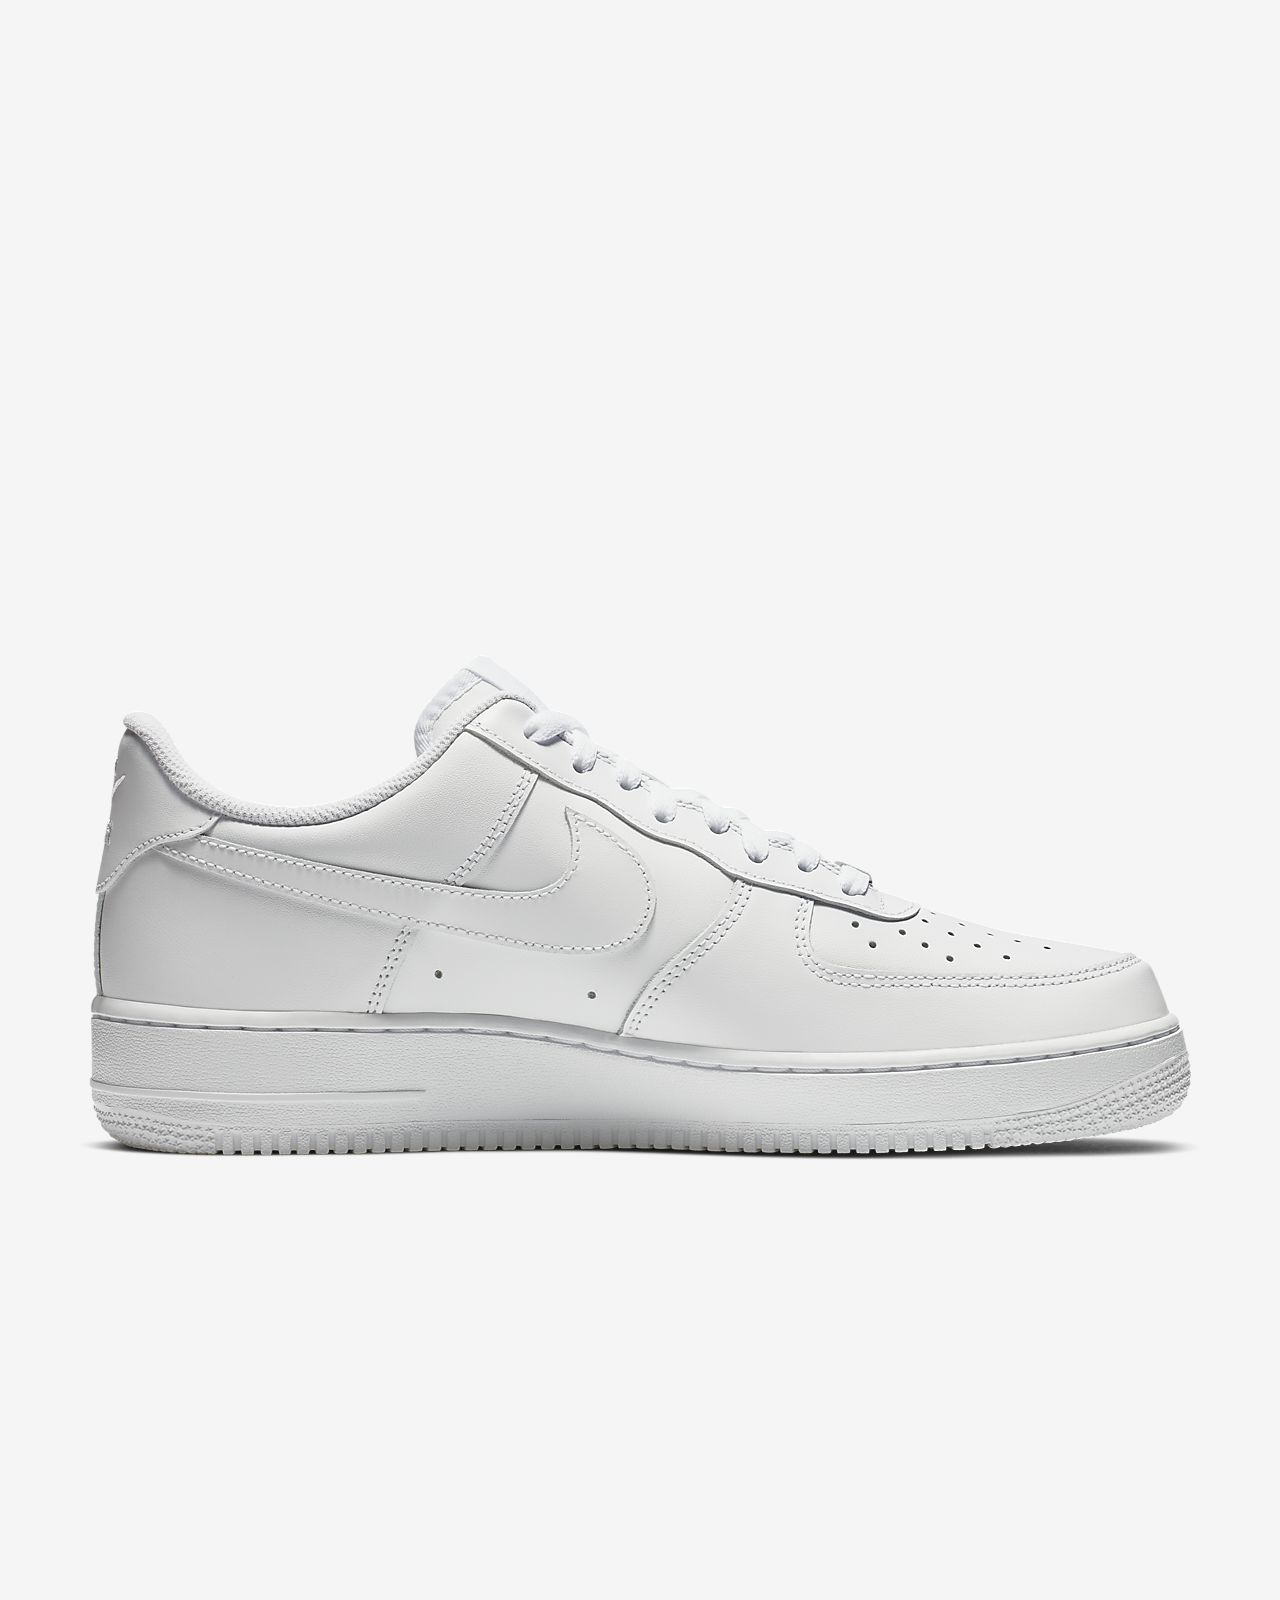 nike men's air force 1 '07' low trainers nz